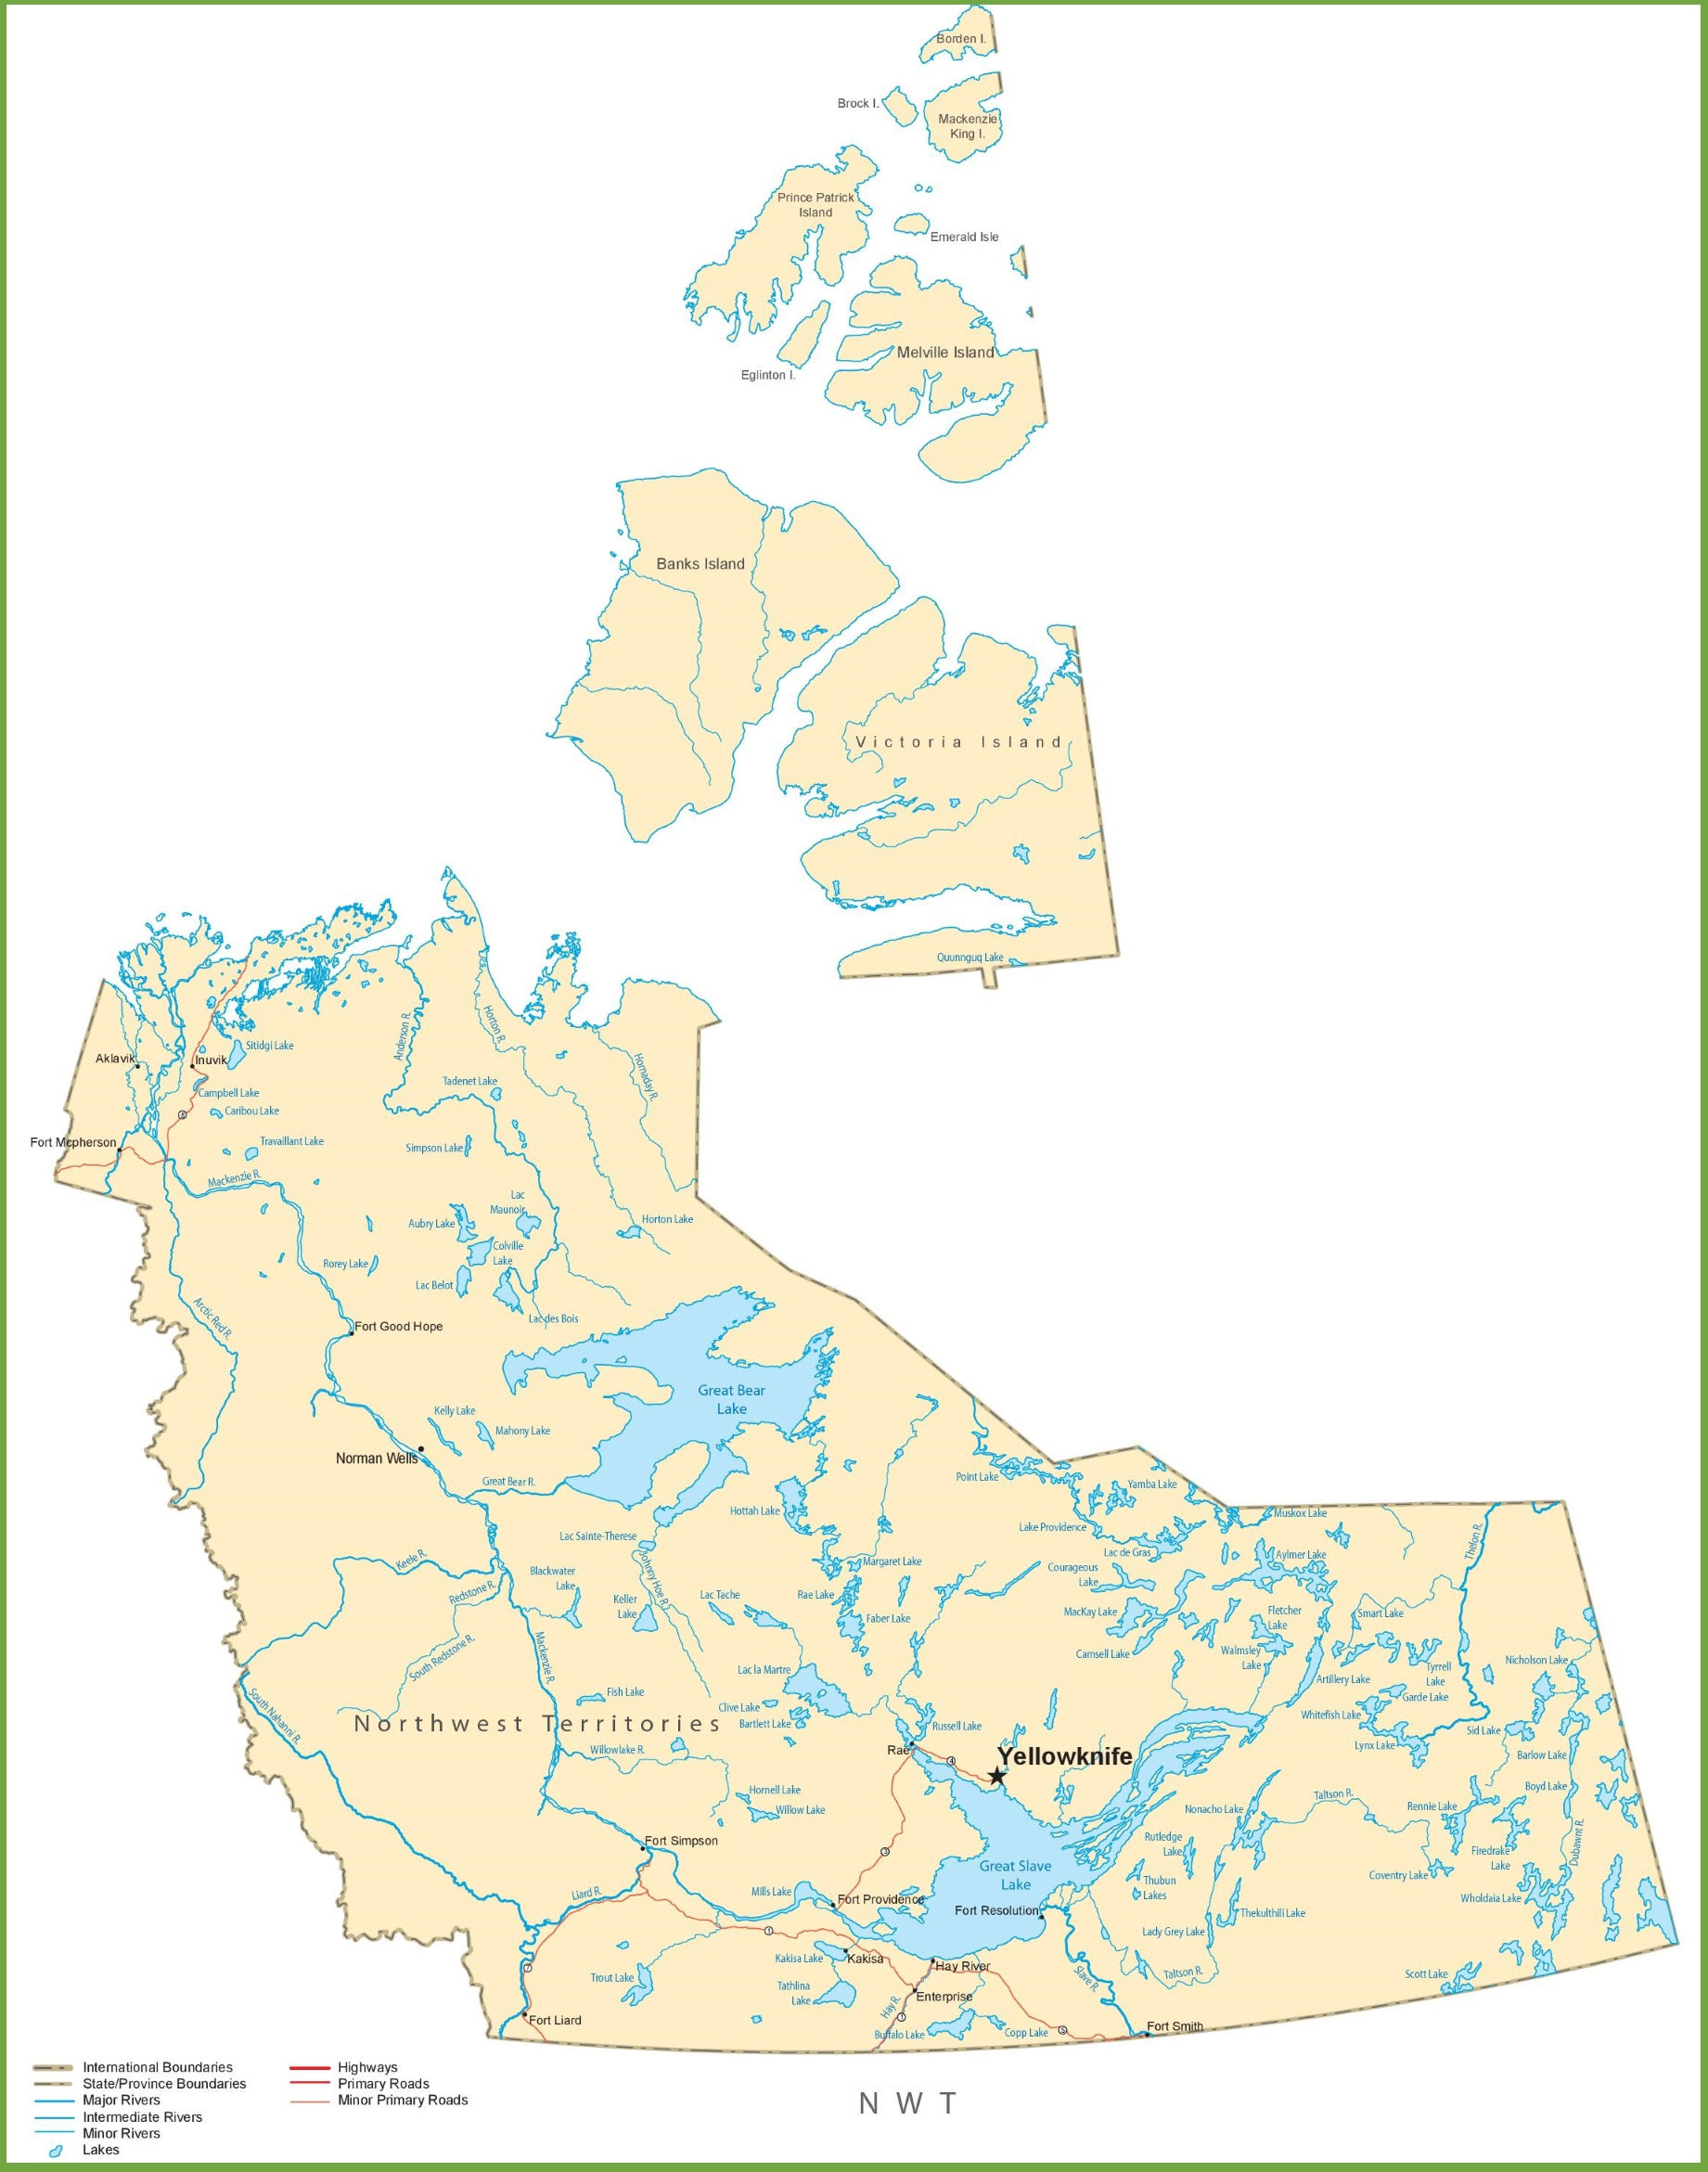 Northwest Territories Canada Map.Northwest Territories Road Map